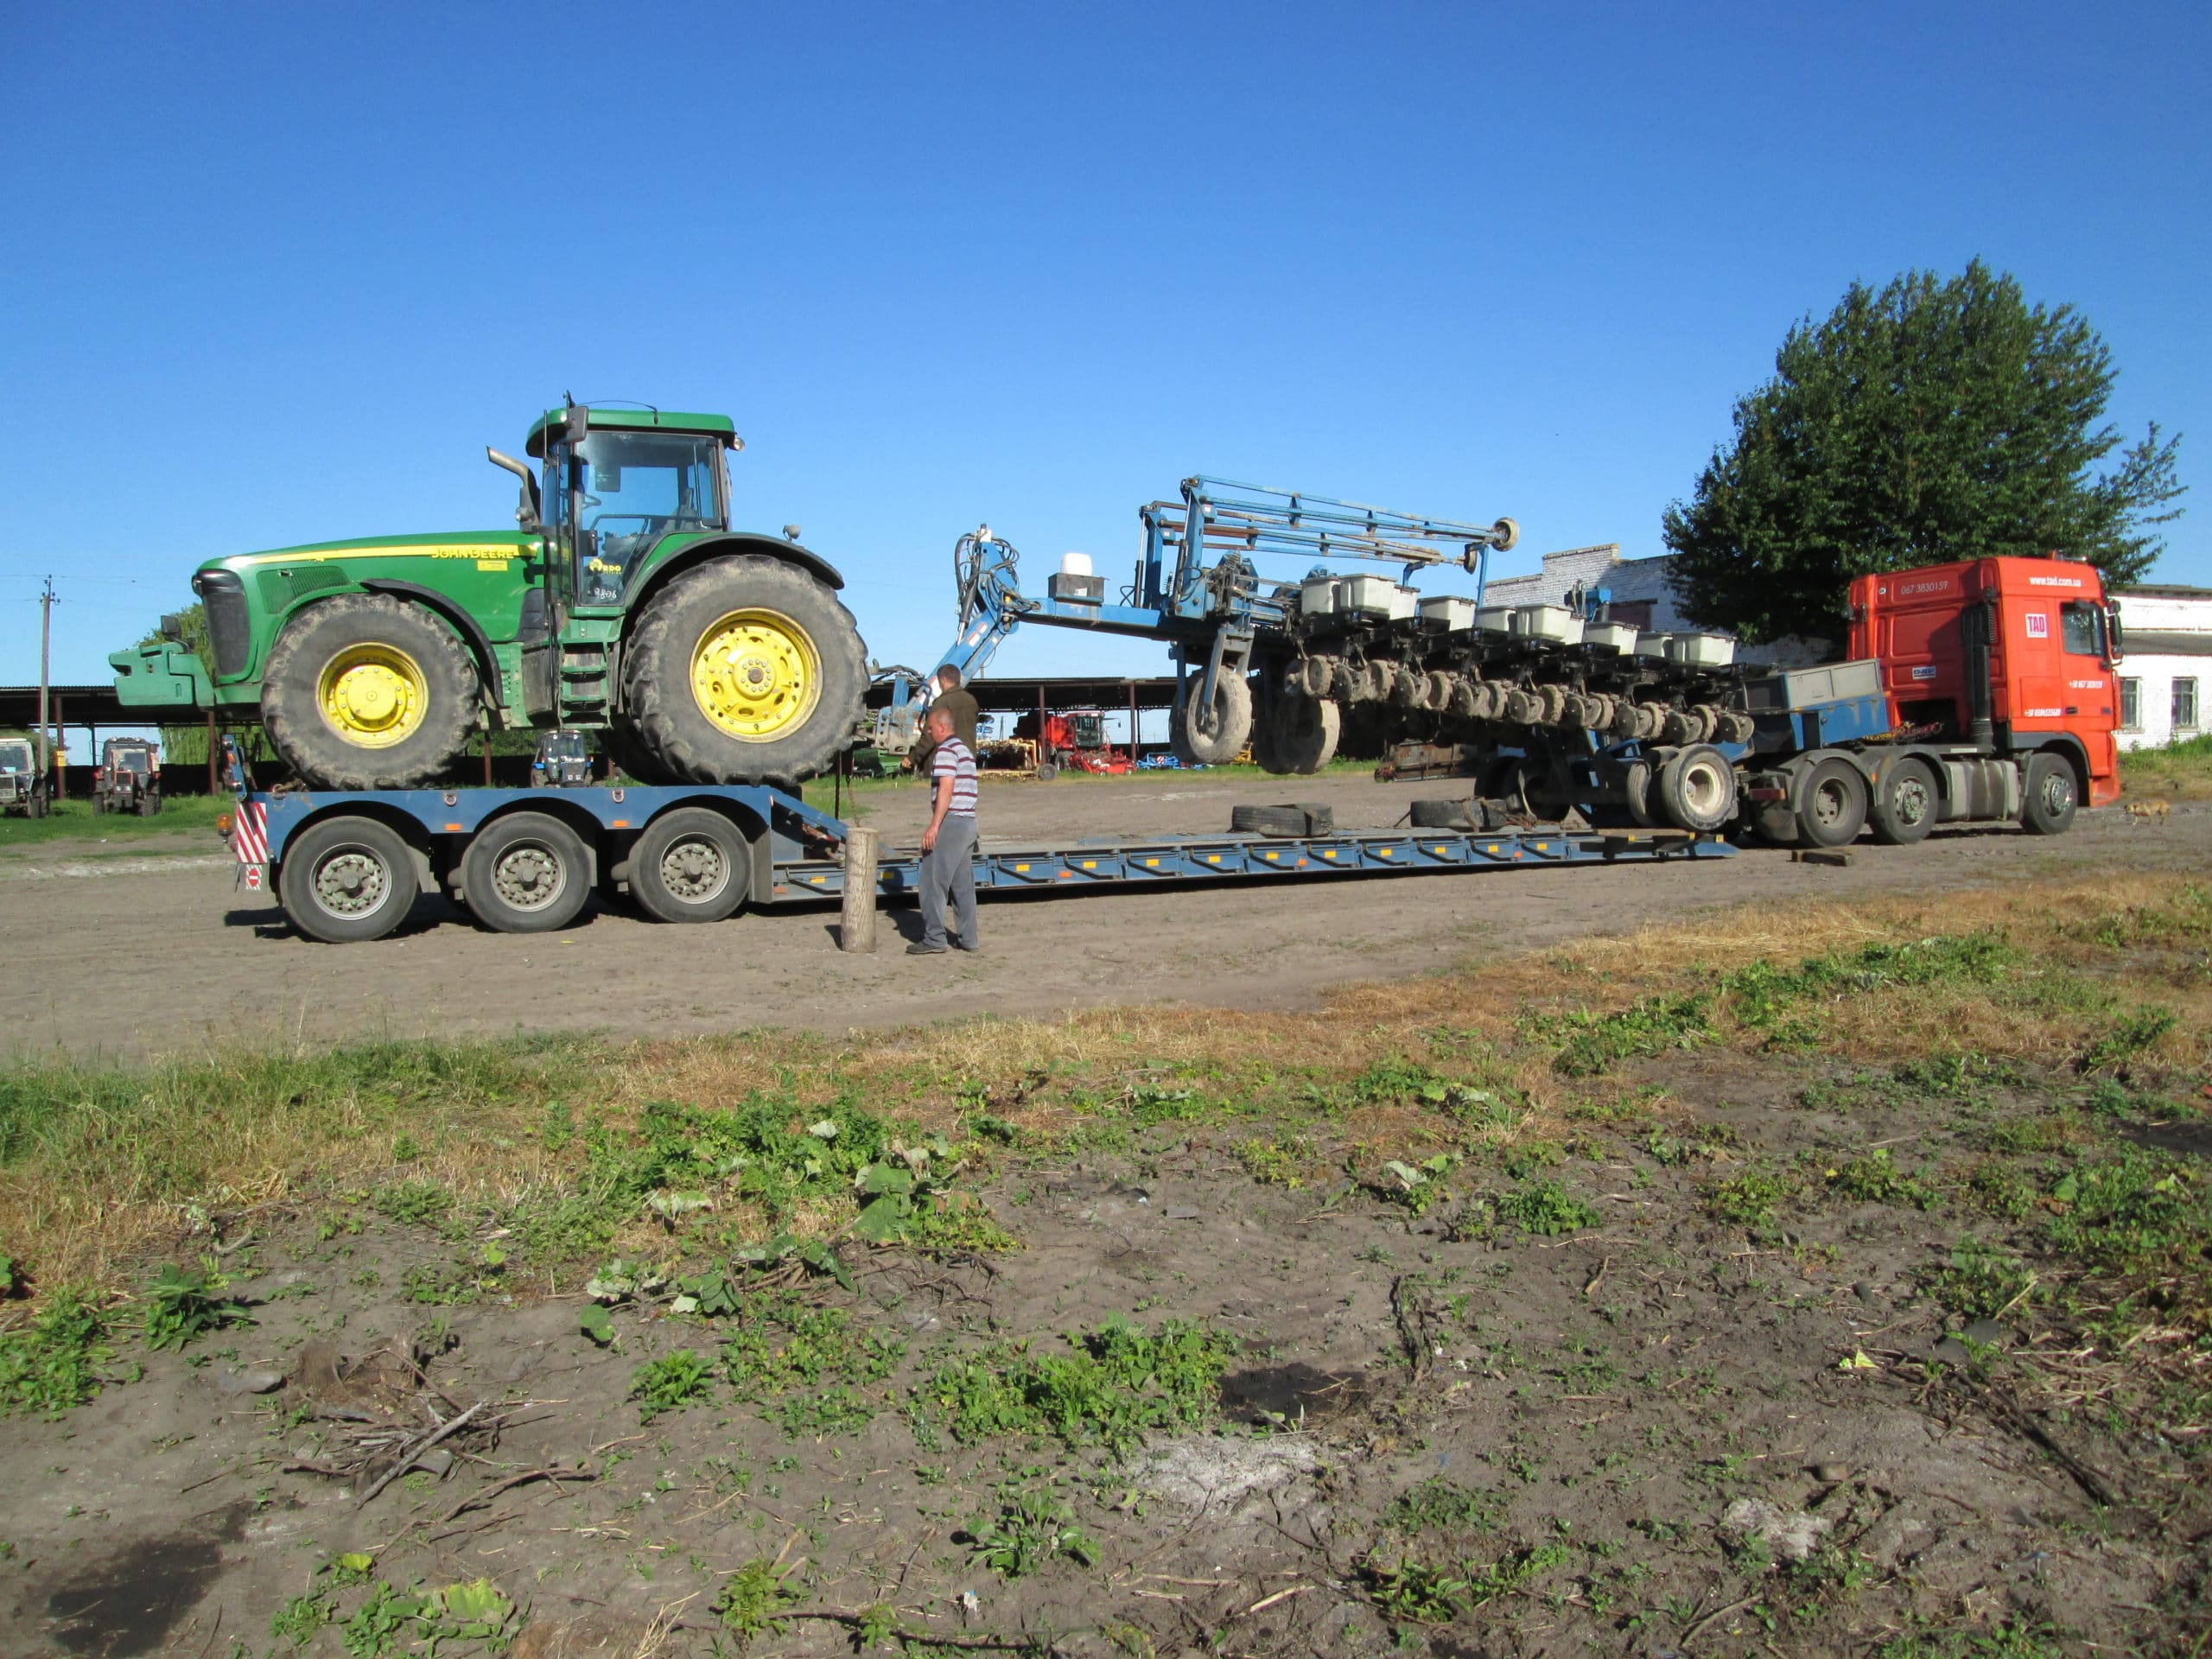 Transportation-tractor-john-deere-in-Ukraine-